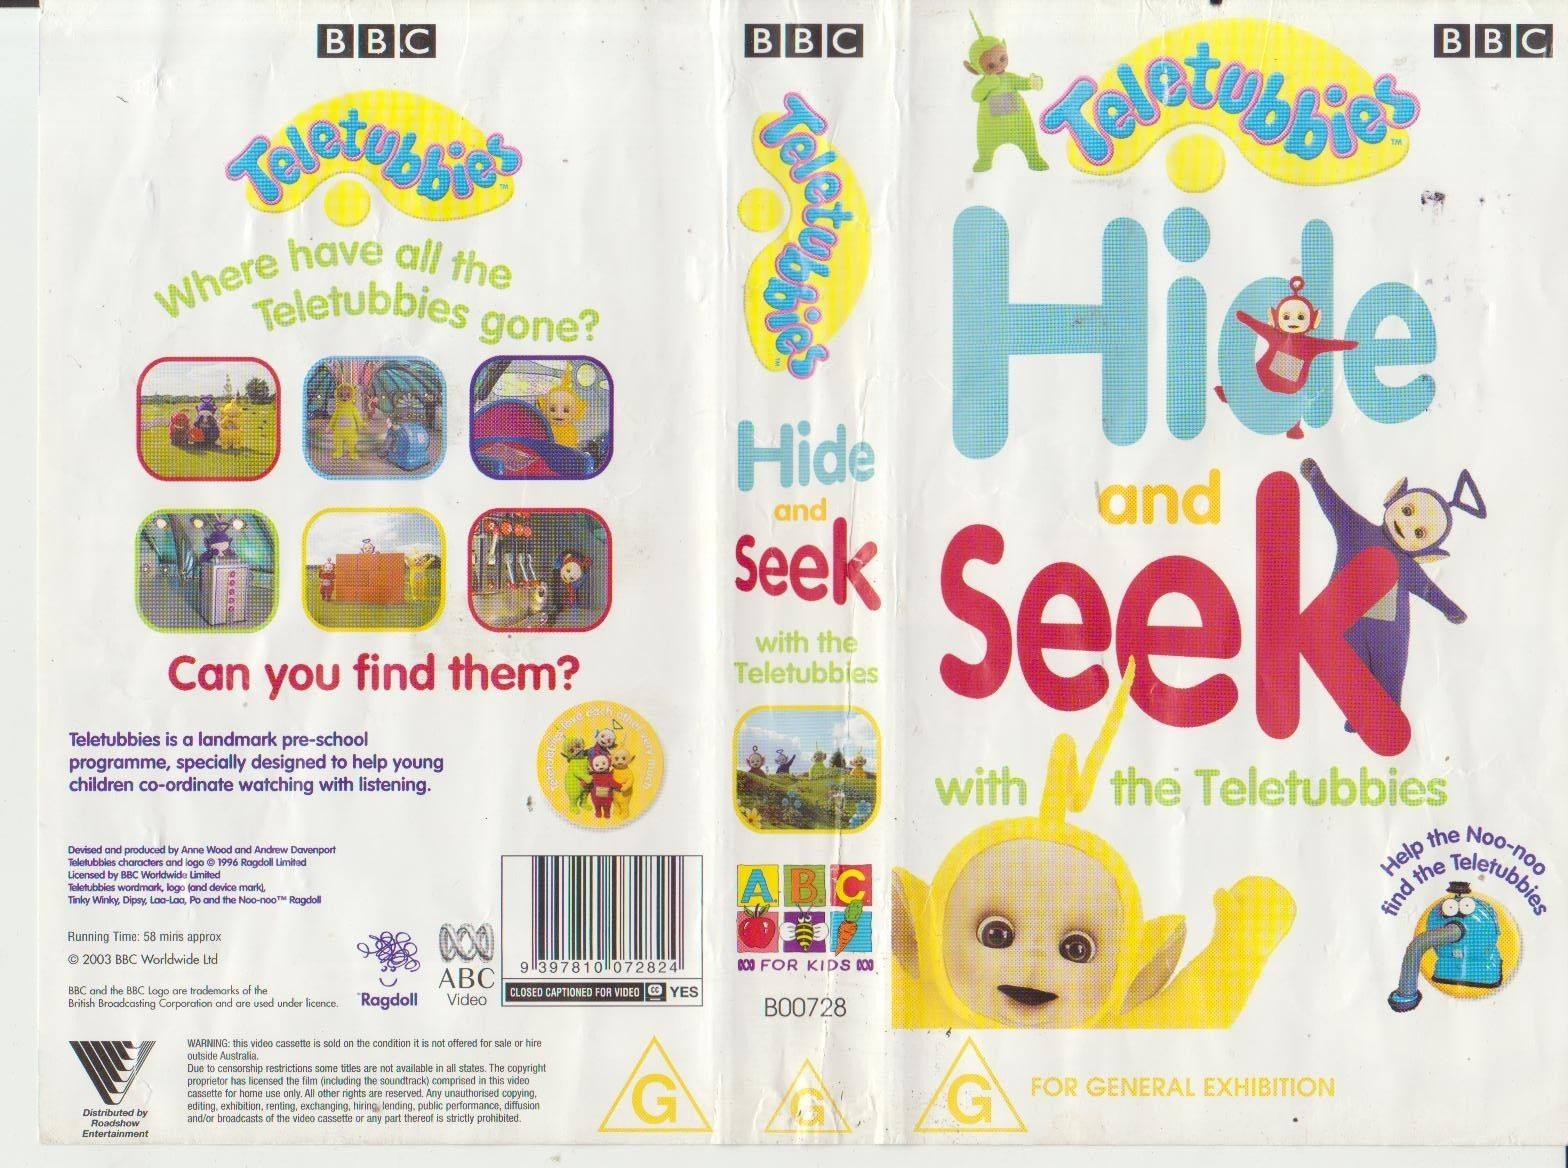 Hide and Seek with the Teletubbies